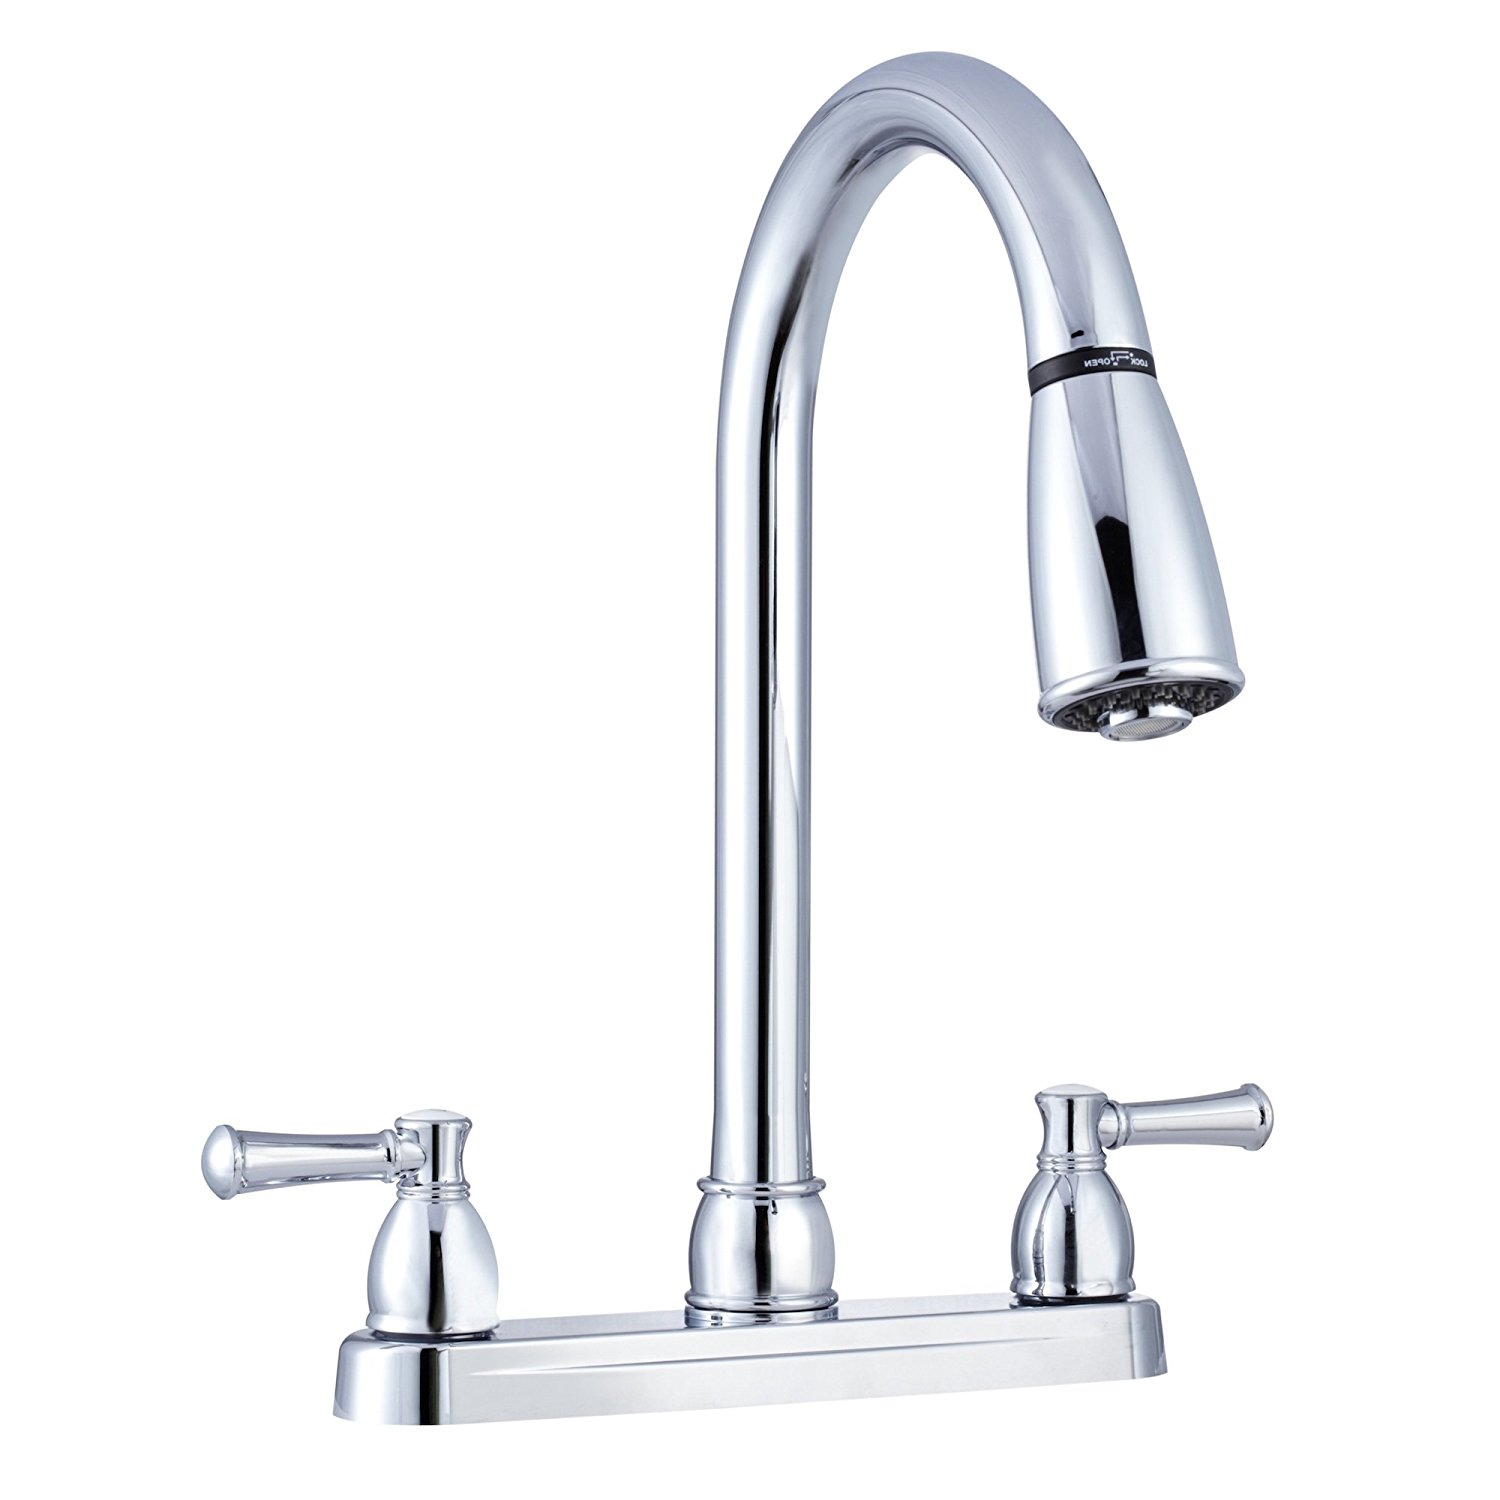 df pk350l cp non metallic dual lever pull down rv kitchen faucet replacement faucet for motorhomes 5th wheel trailer camper chrome by dura